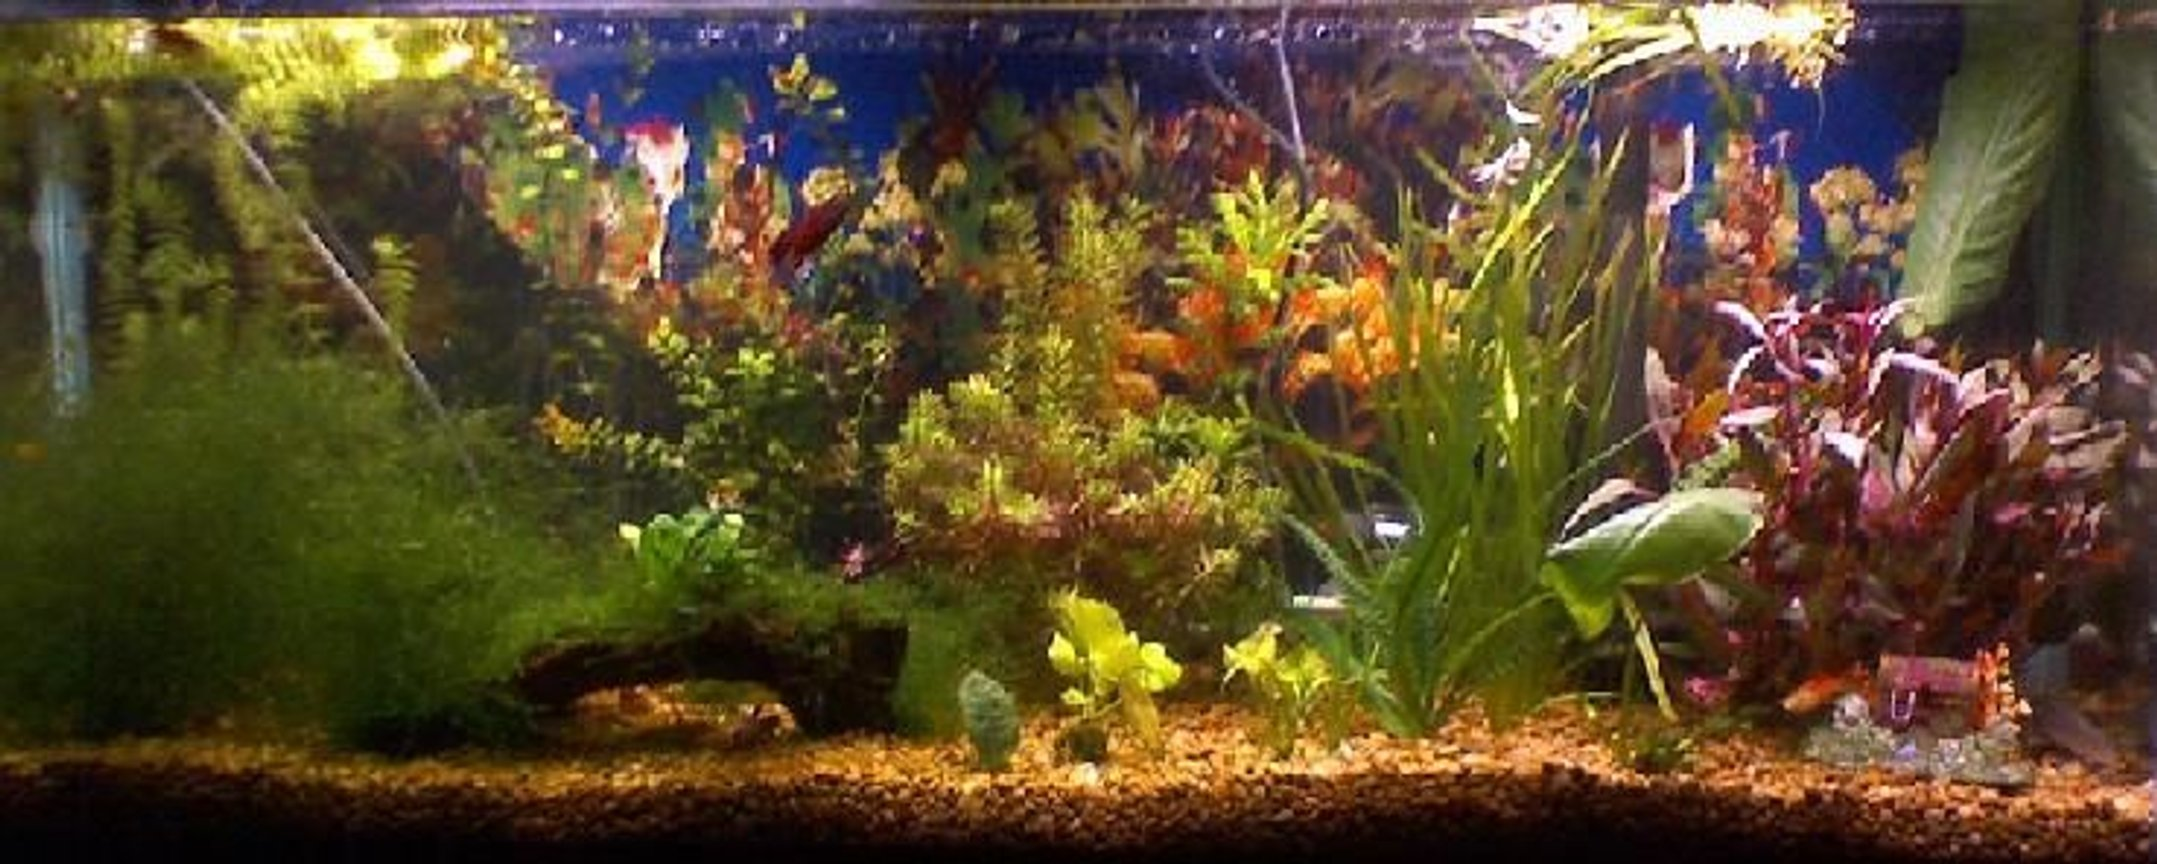 55 gallons planted tank (mostly live plants and fish) - 55 gal fry tank 15 pineapple swordtails 10 guppies 1male betta and two females gold alga eater plecko silver shark